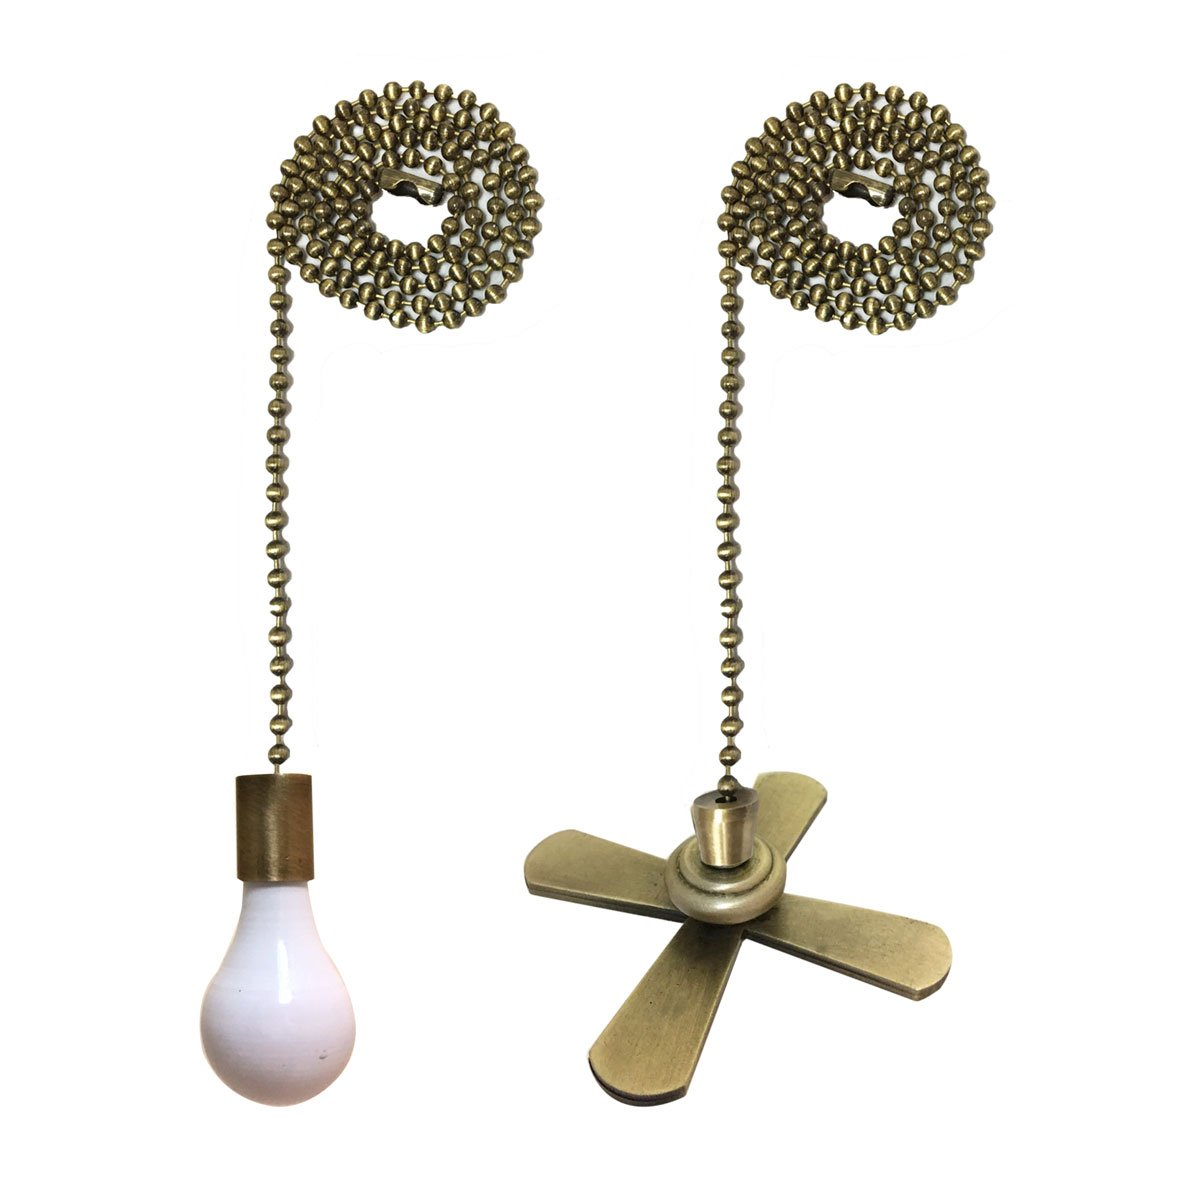 Royal Designs FP-1001-2-A-B Metal Fan and Light Bulb Pull Chain, Antique Brass & White